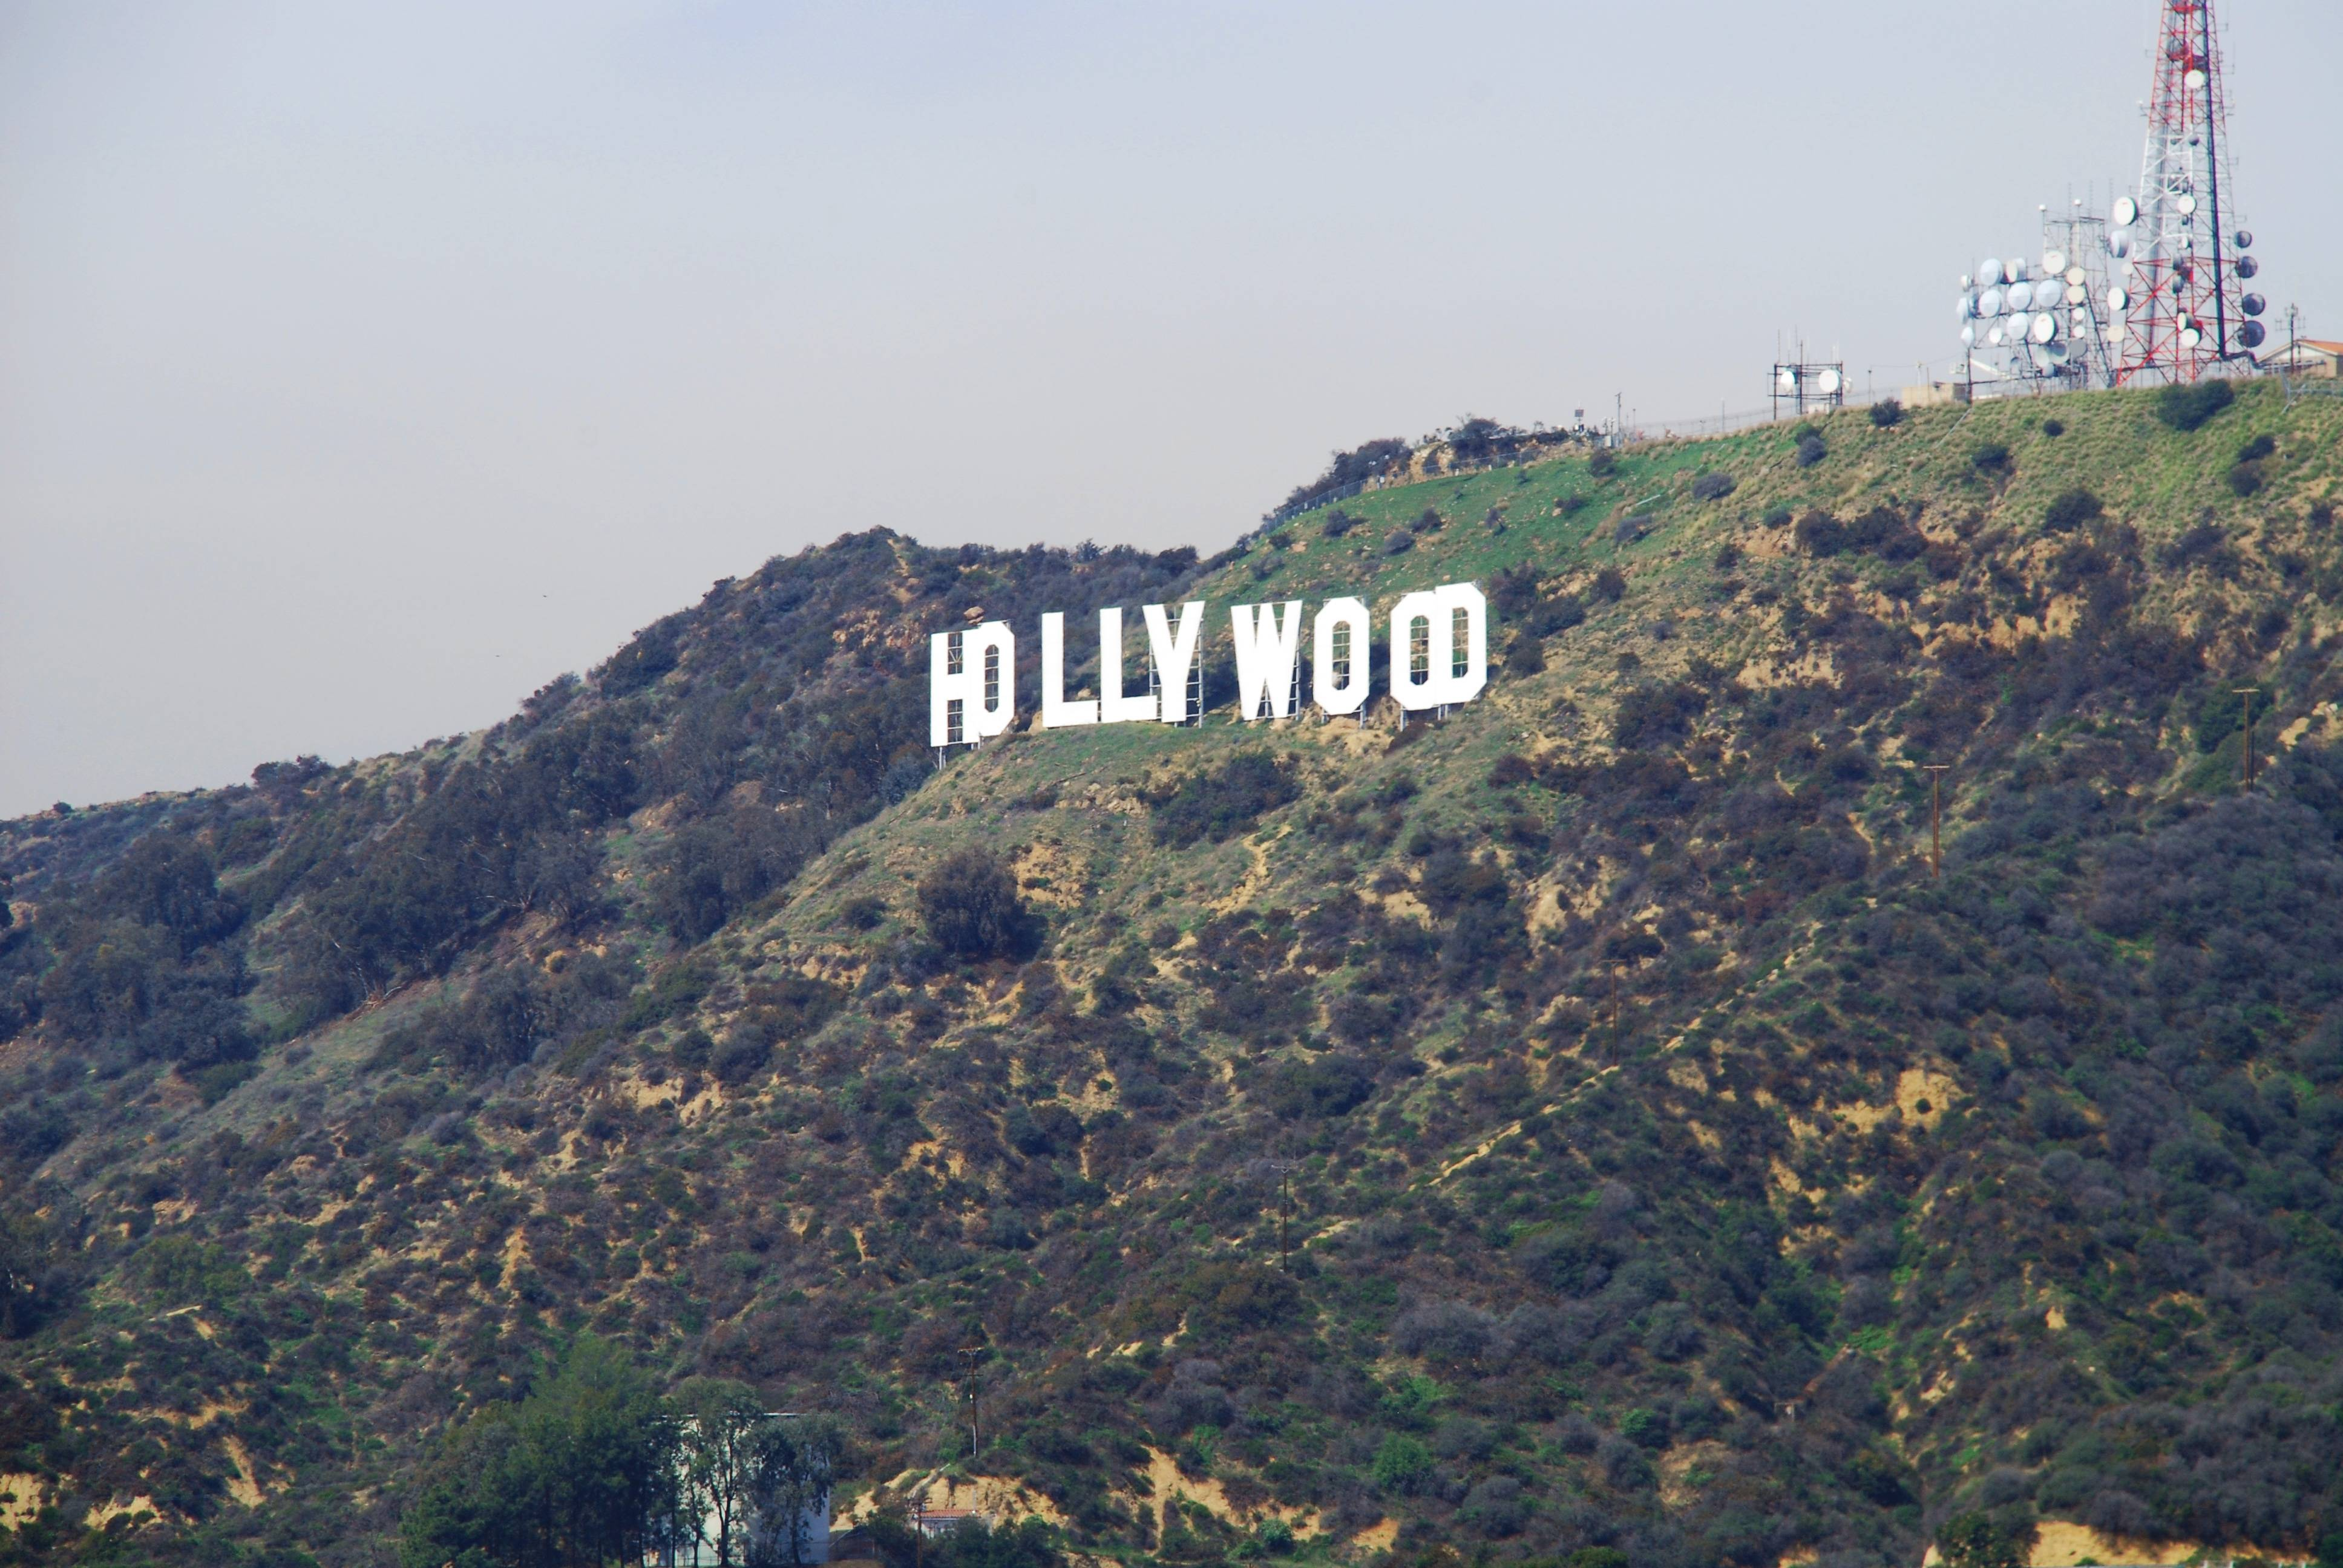 wallpapers a hollywood - photo #13